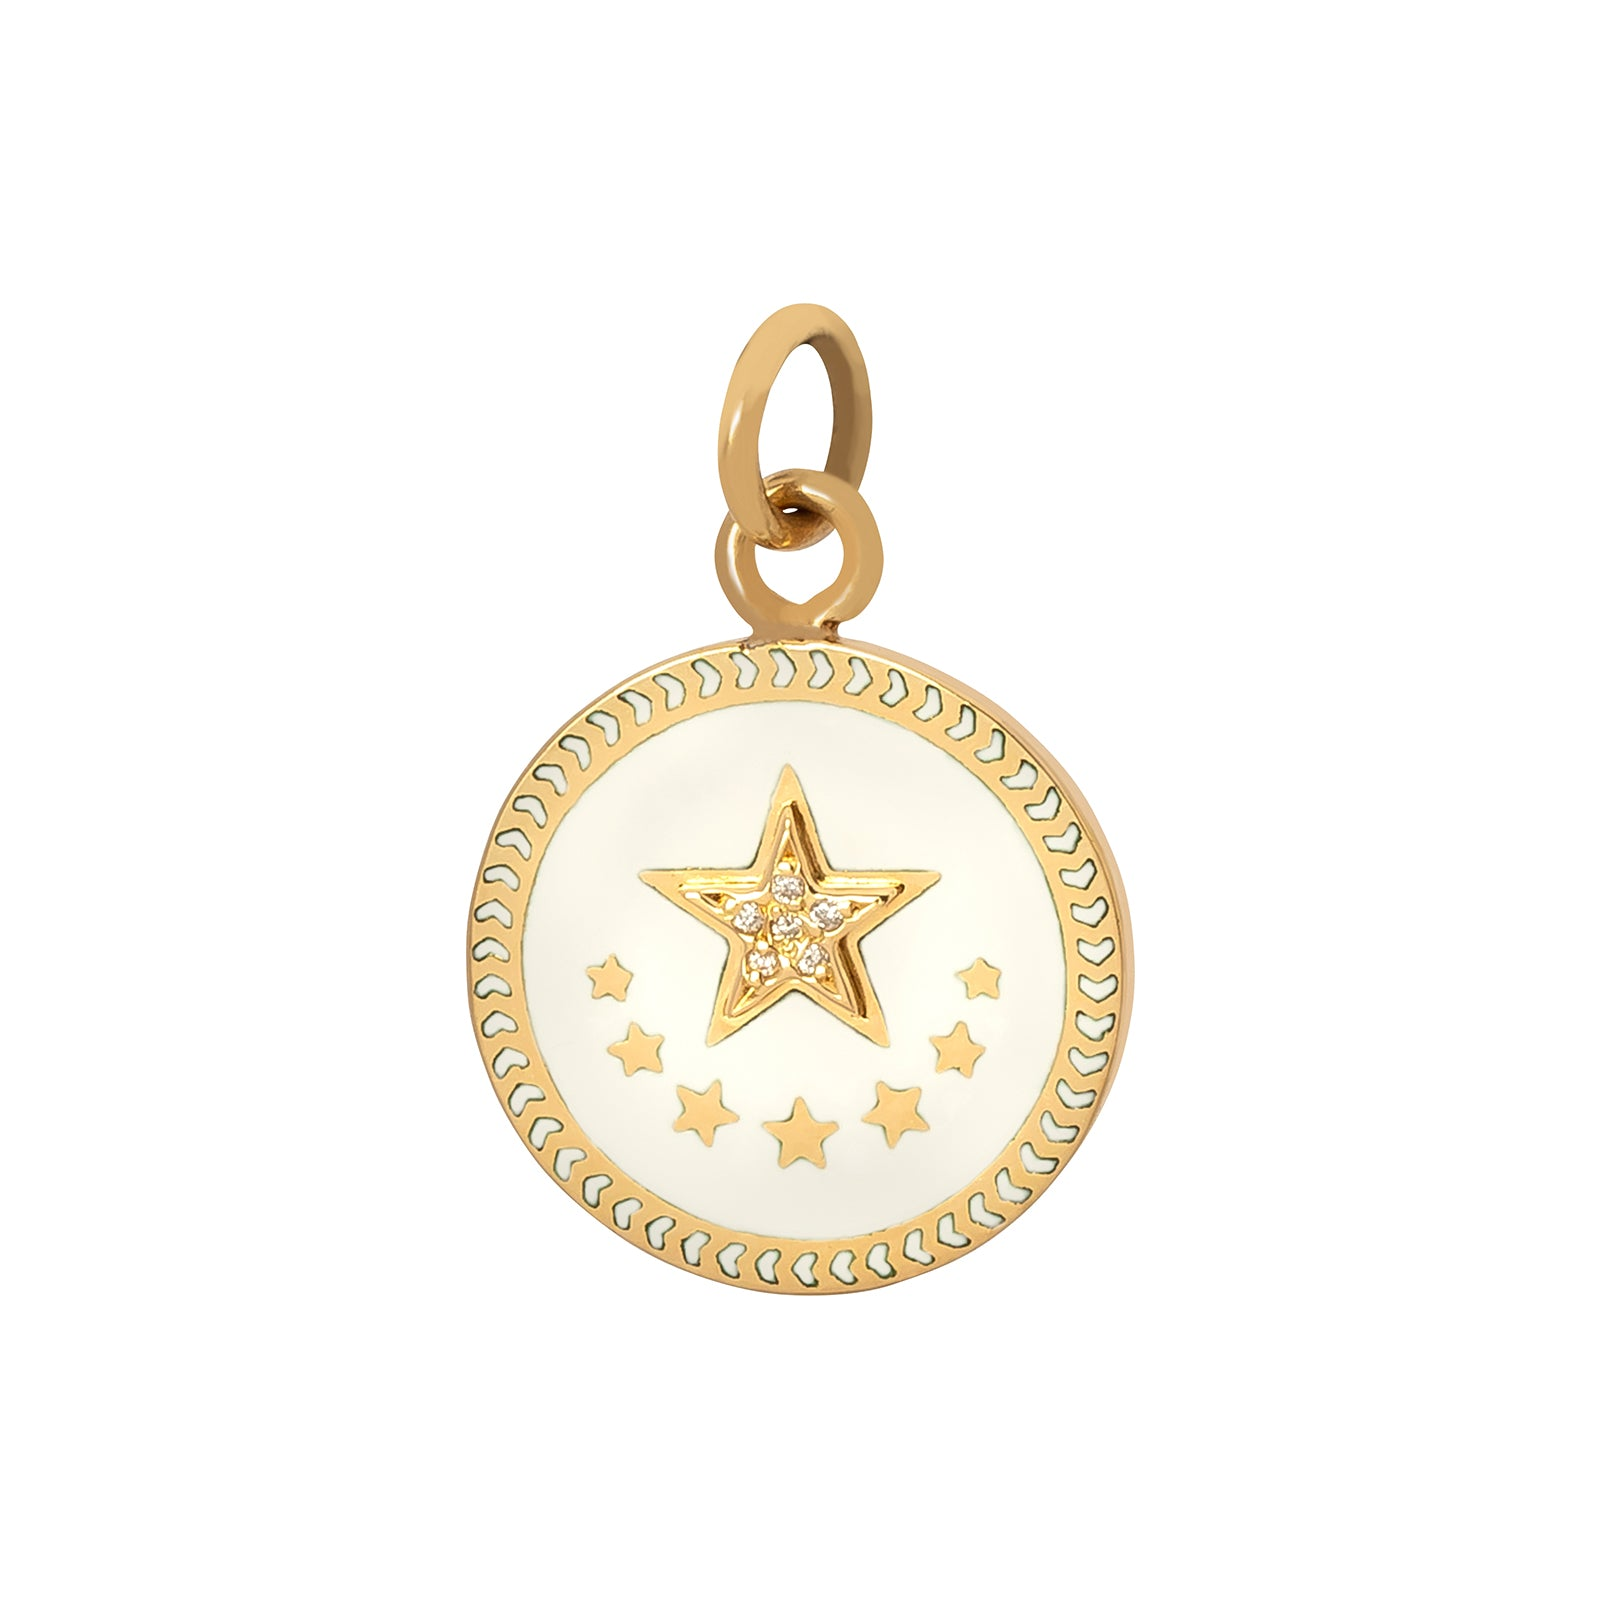 Foundrae Petite Champlevé Star Medallion - White - Charms & Pendants - Broken English Jewelry